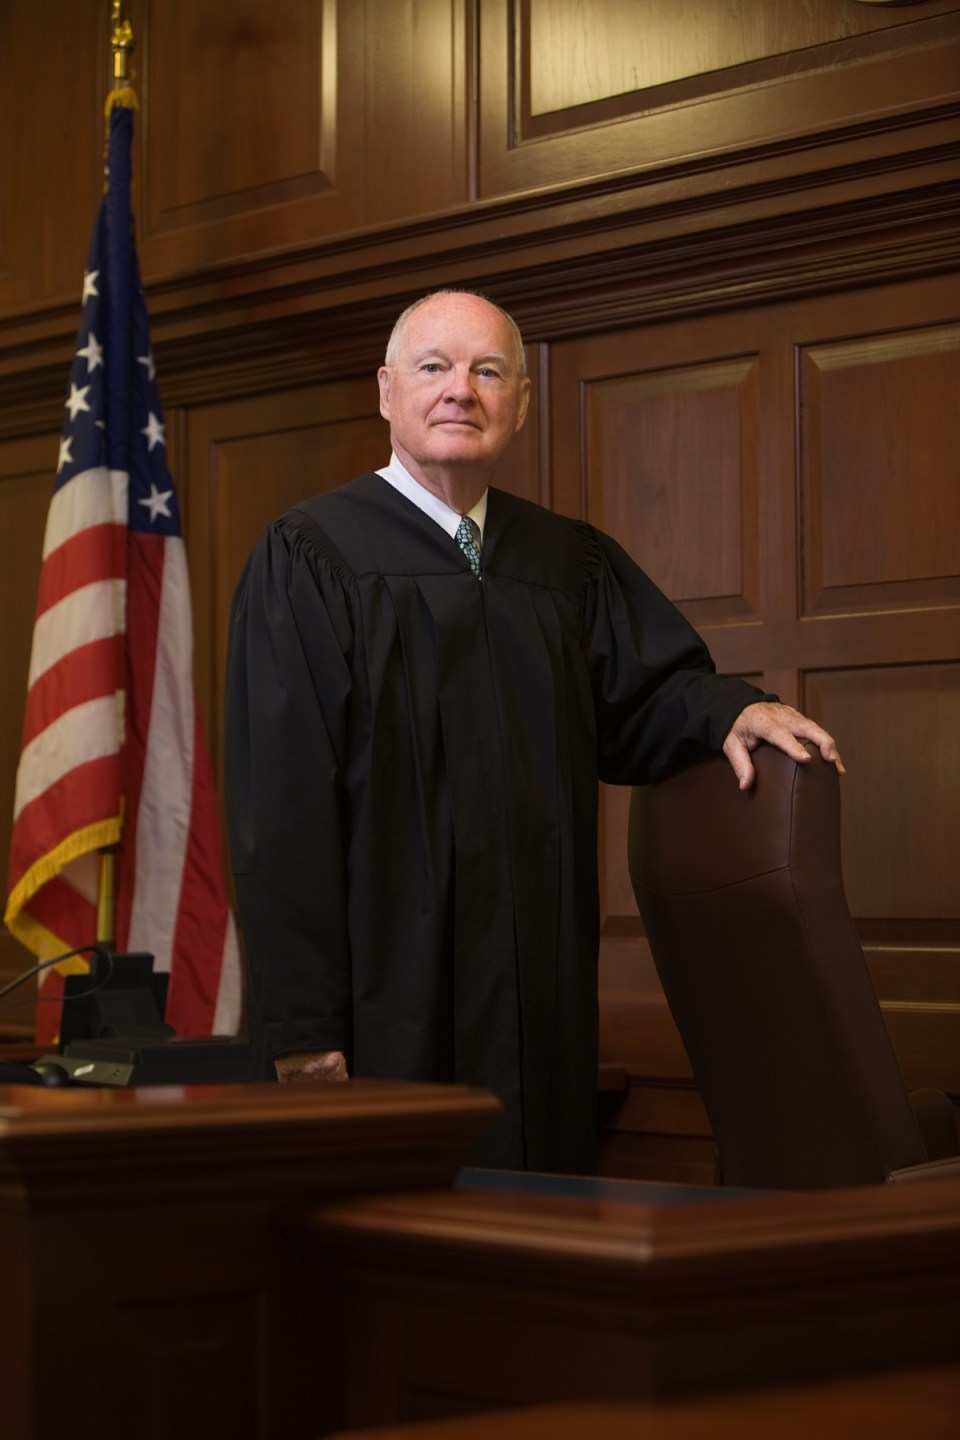 Magistrate Judge John Cooney